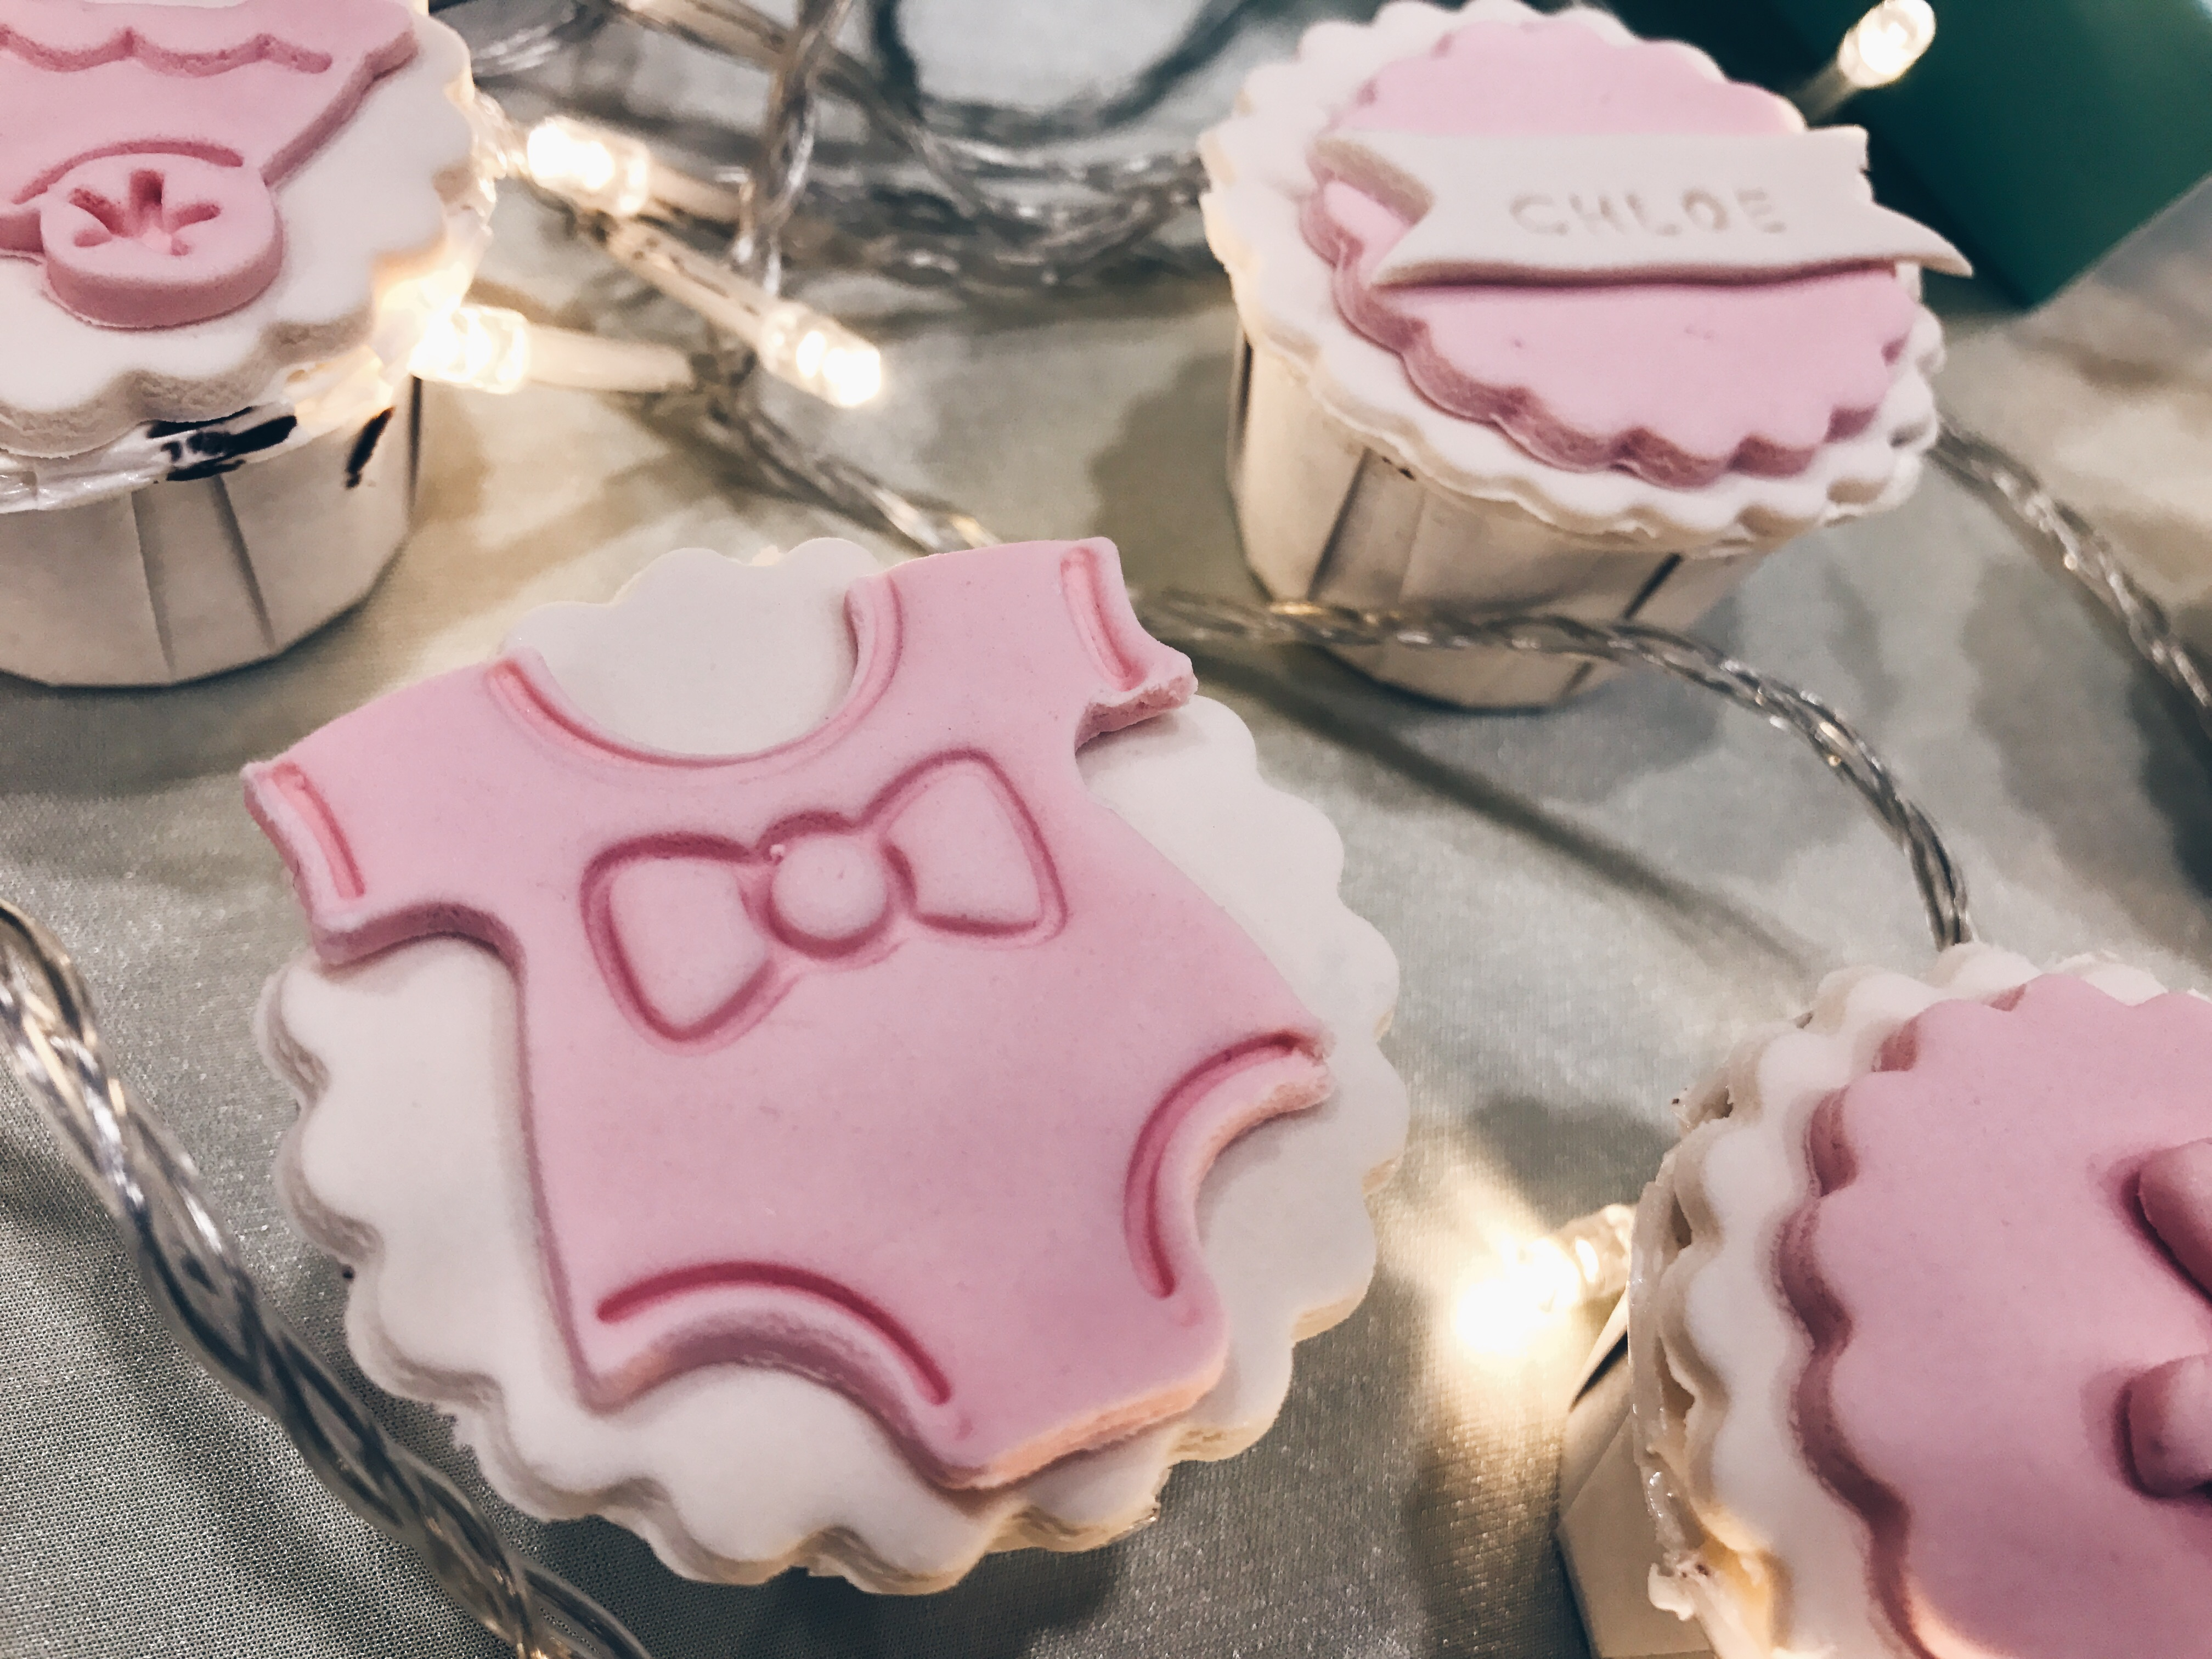 This Set Comes With 6 Cute Dainty Cupcakes And You Are Able To Stamp Your Babys Name On The Cupcake As Well Soooo